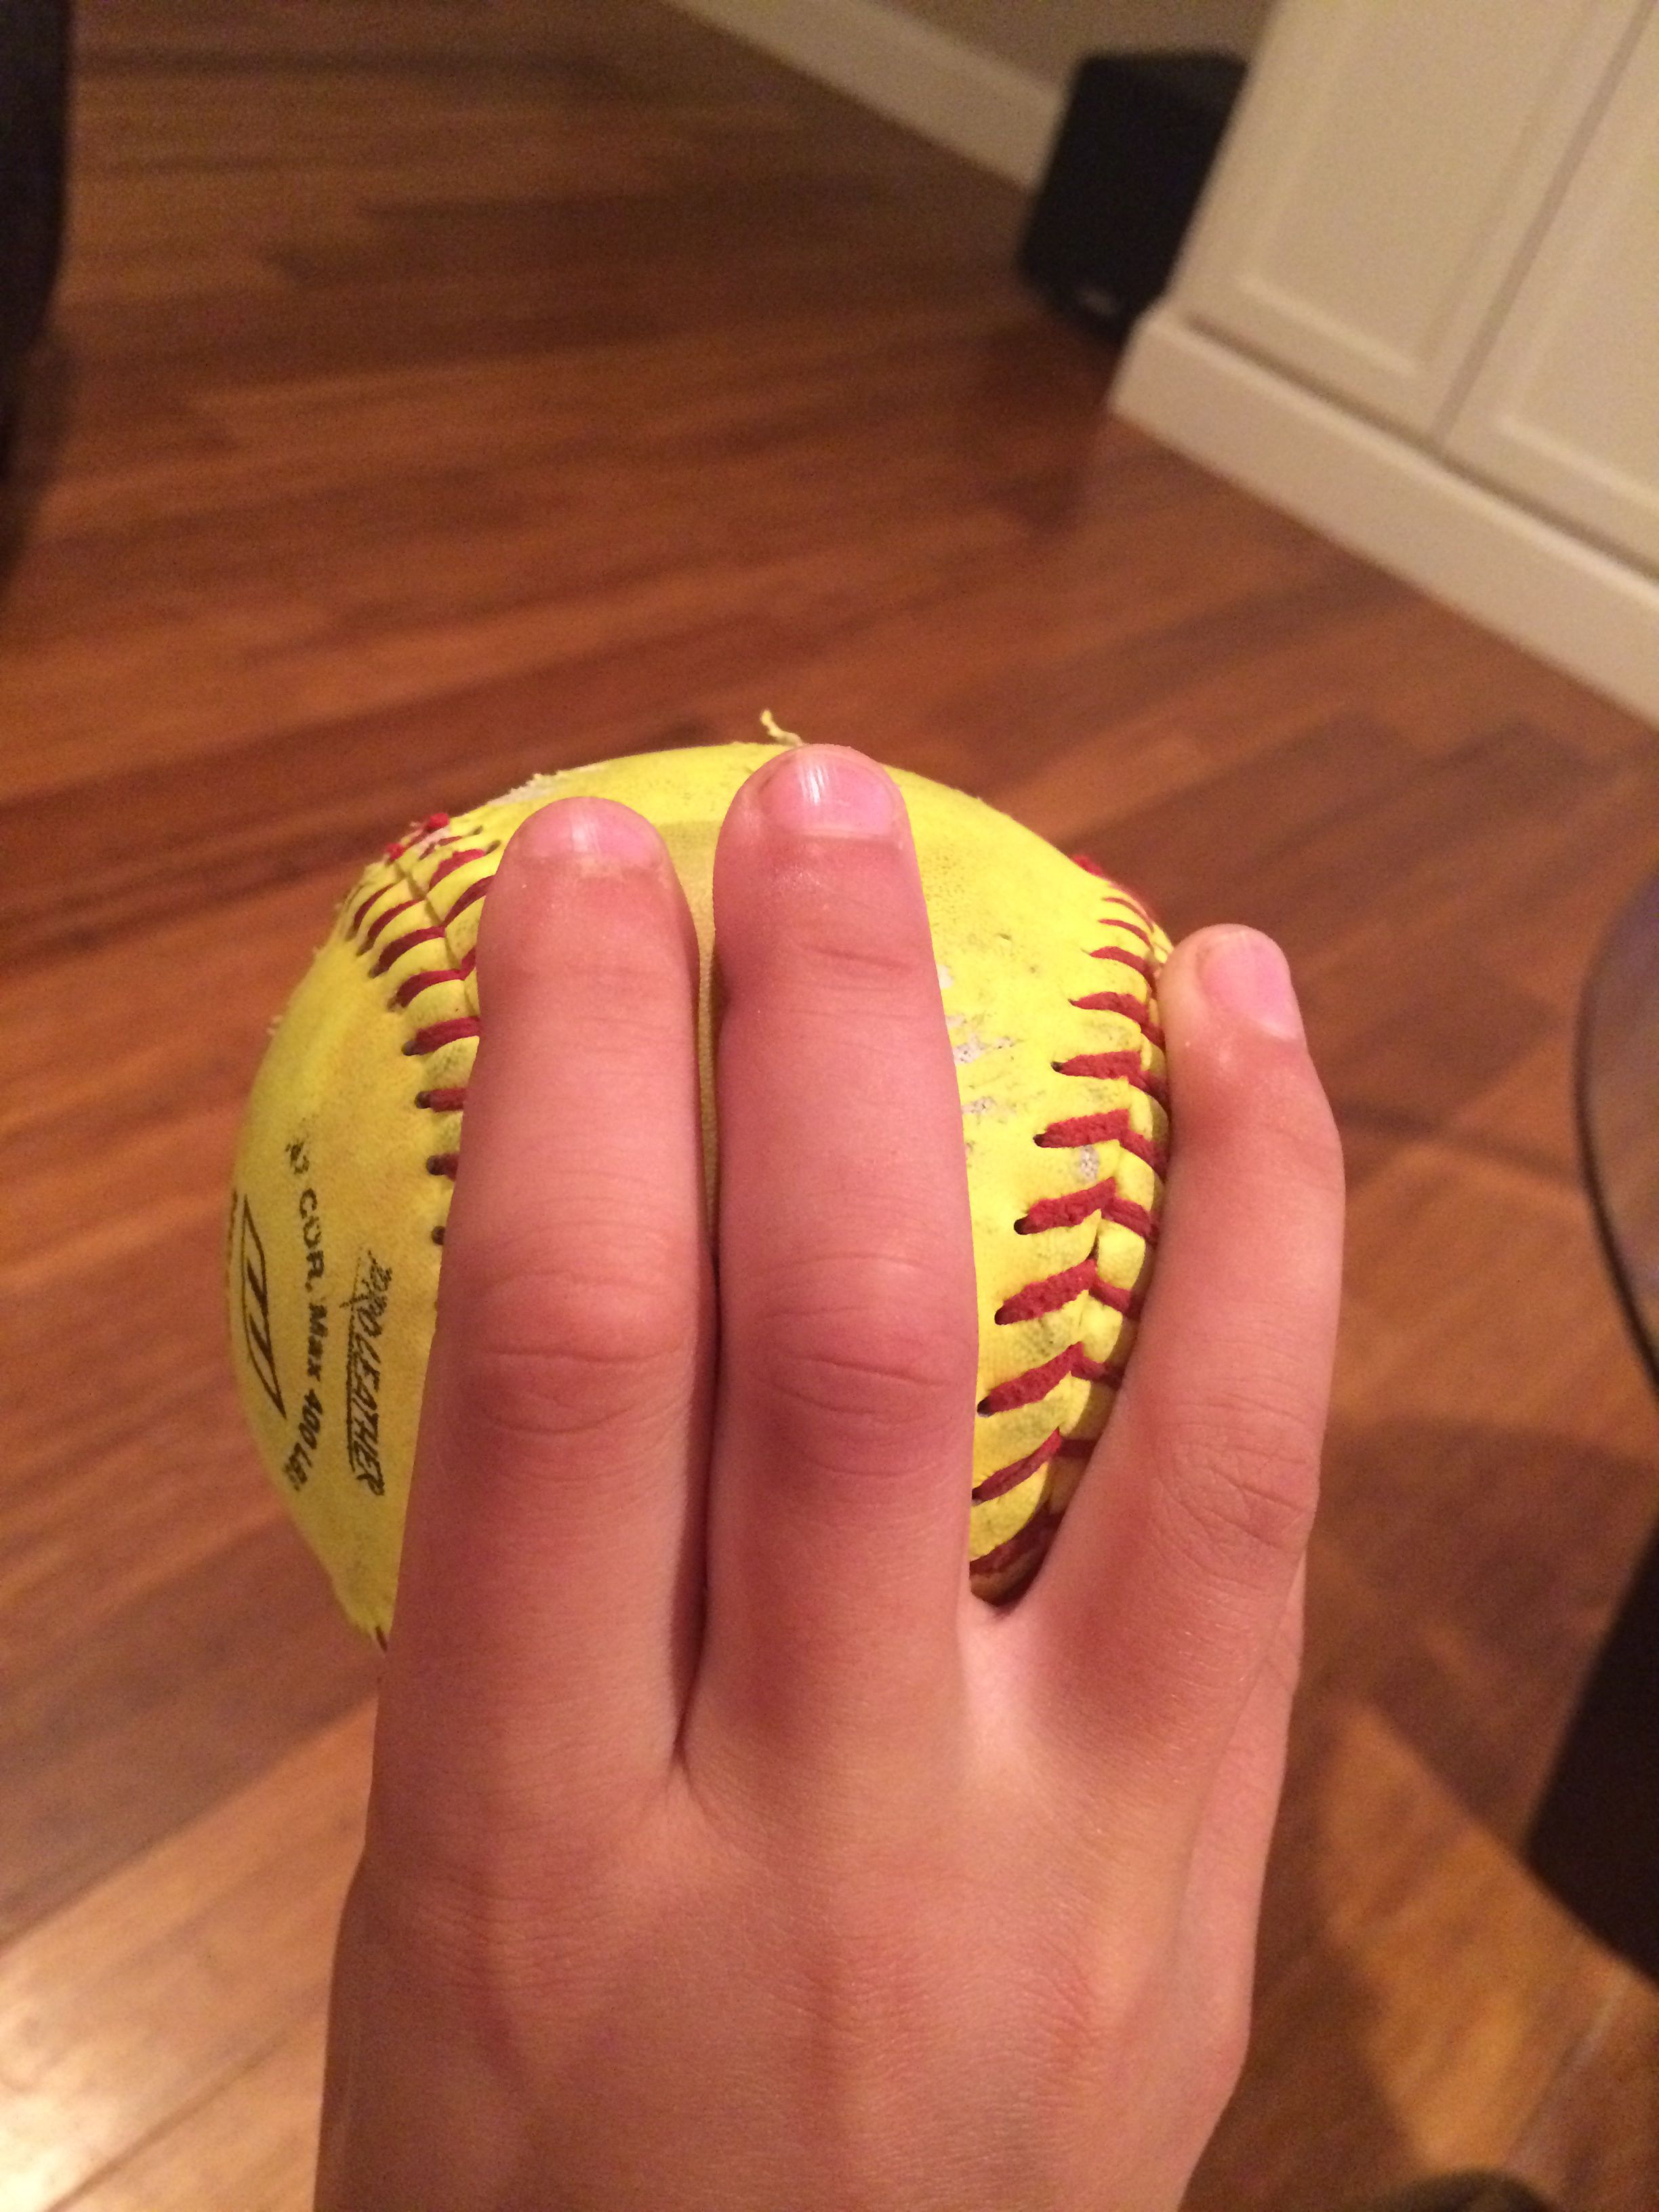 Drop ball grip throw almost like your curveball but